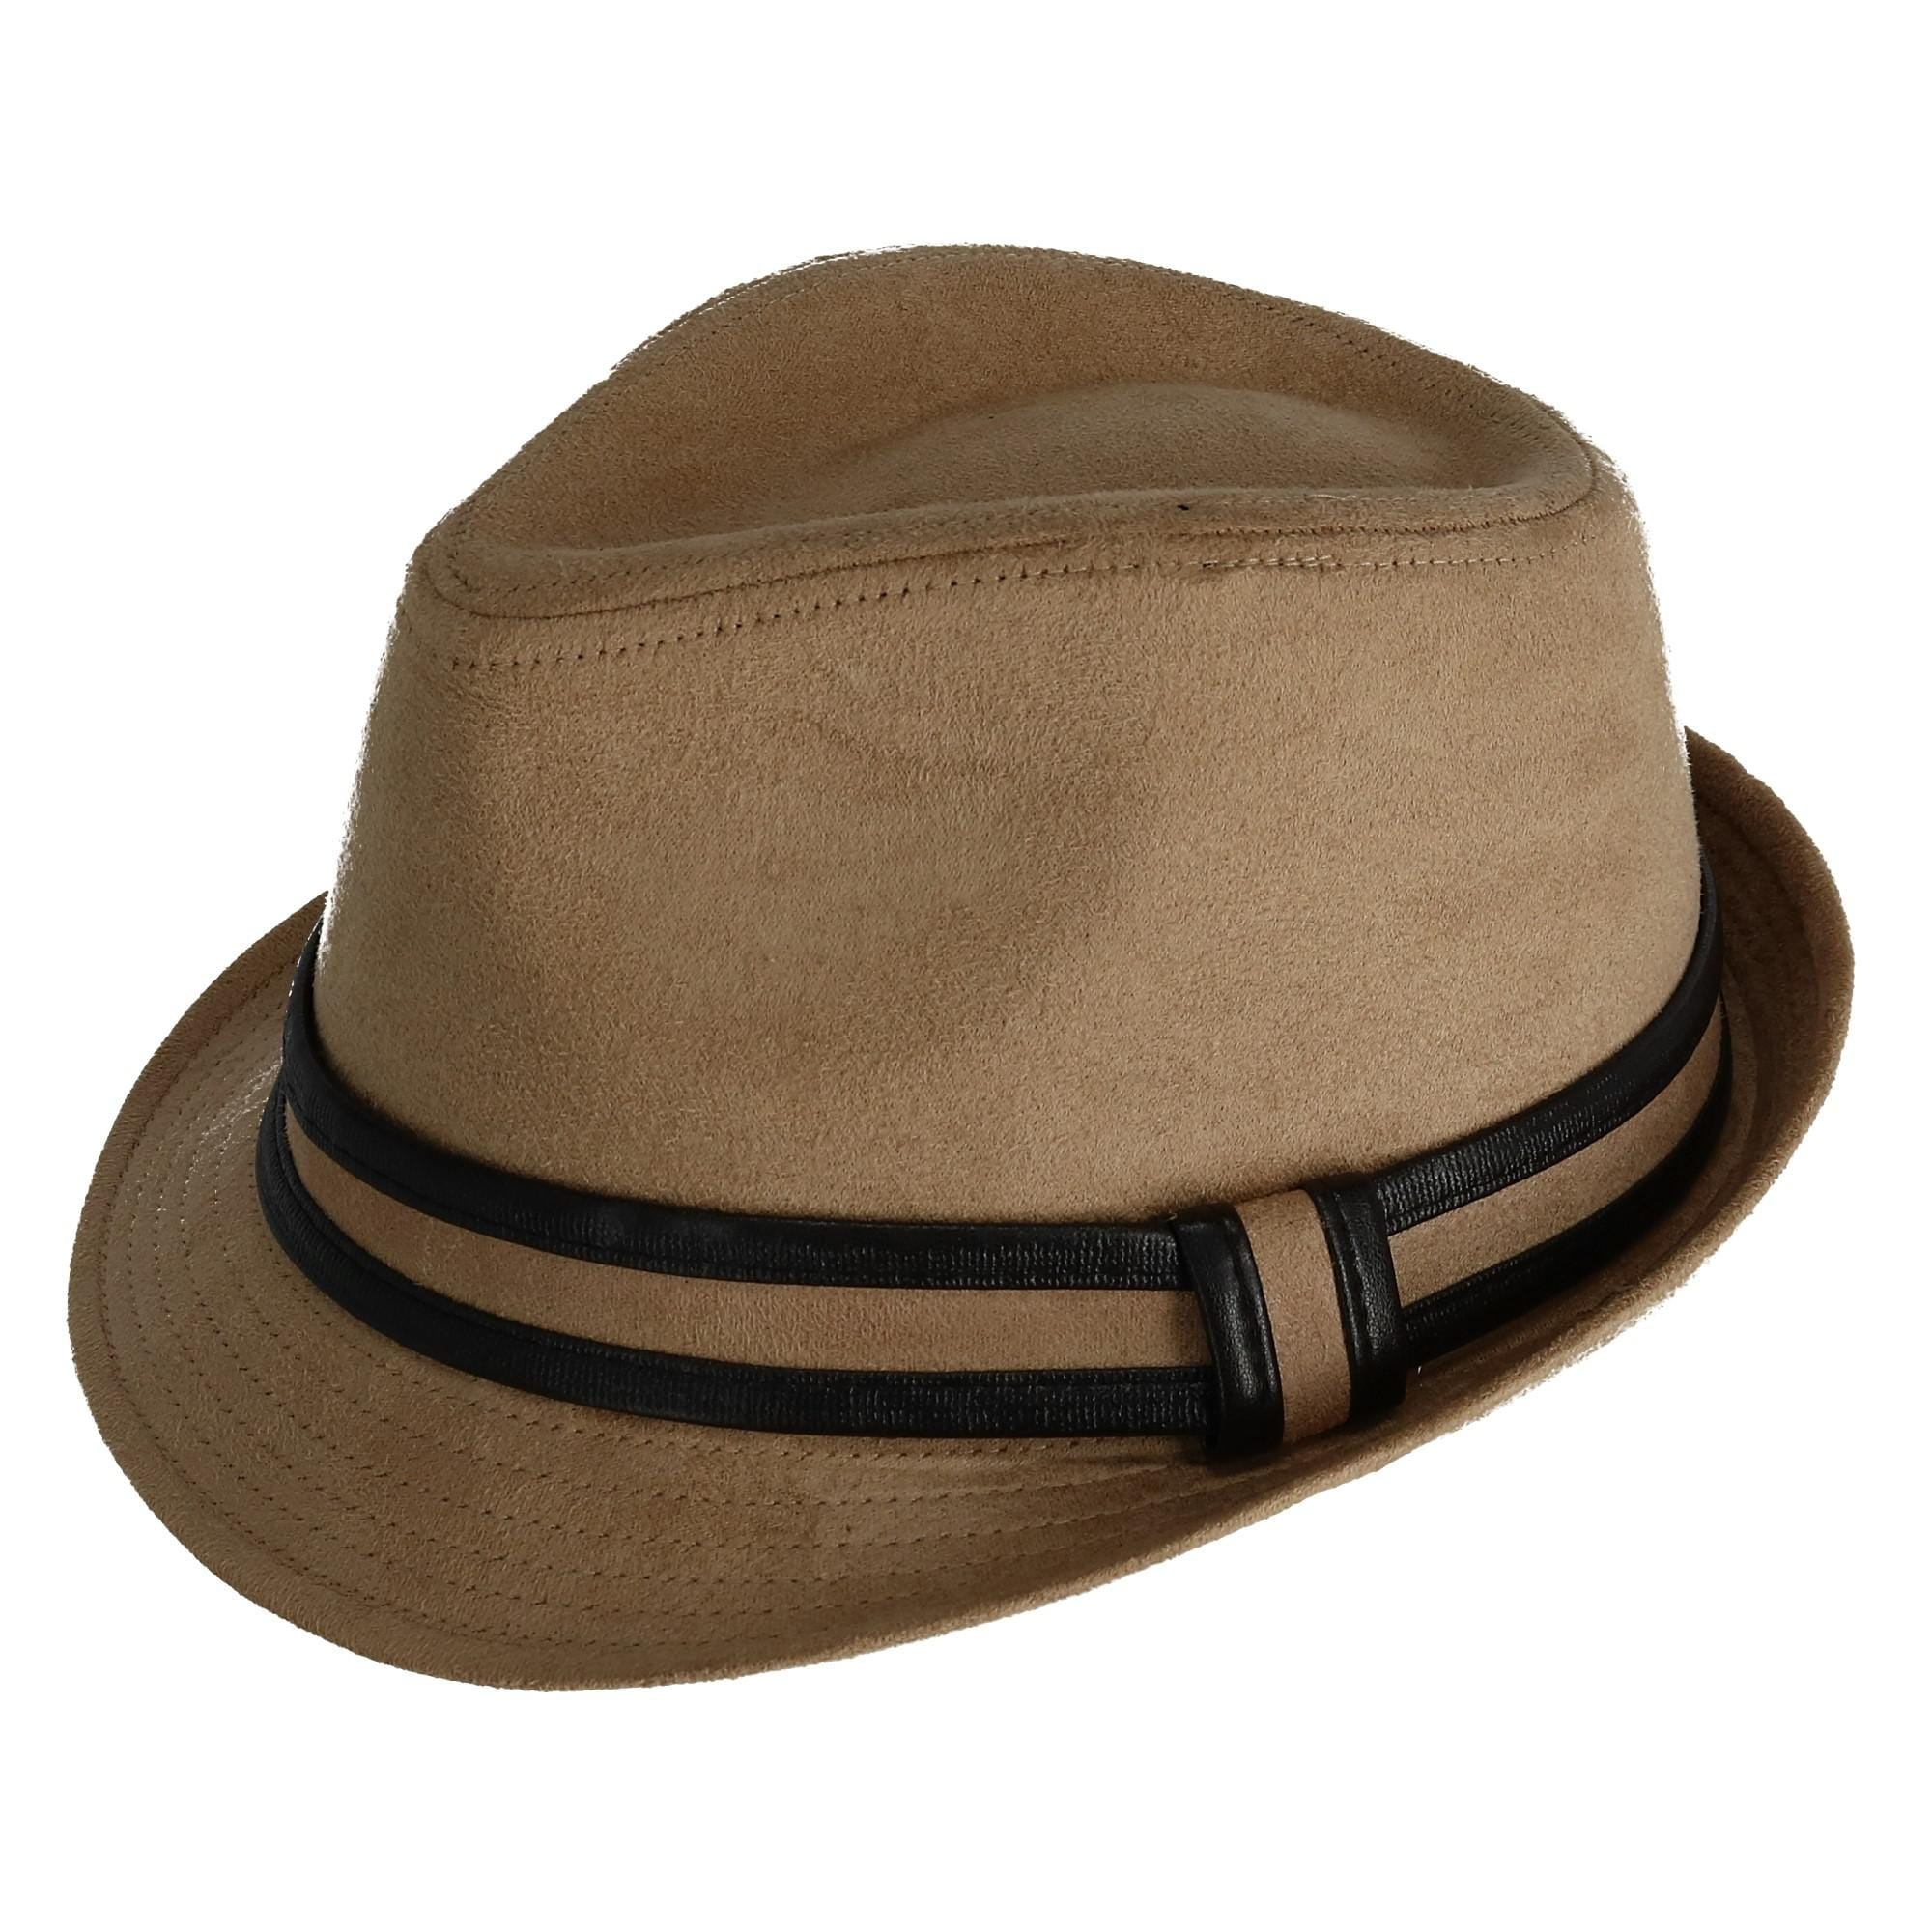 CTM Mens Suede Fedora Hat with Leather Trim